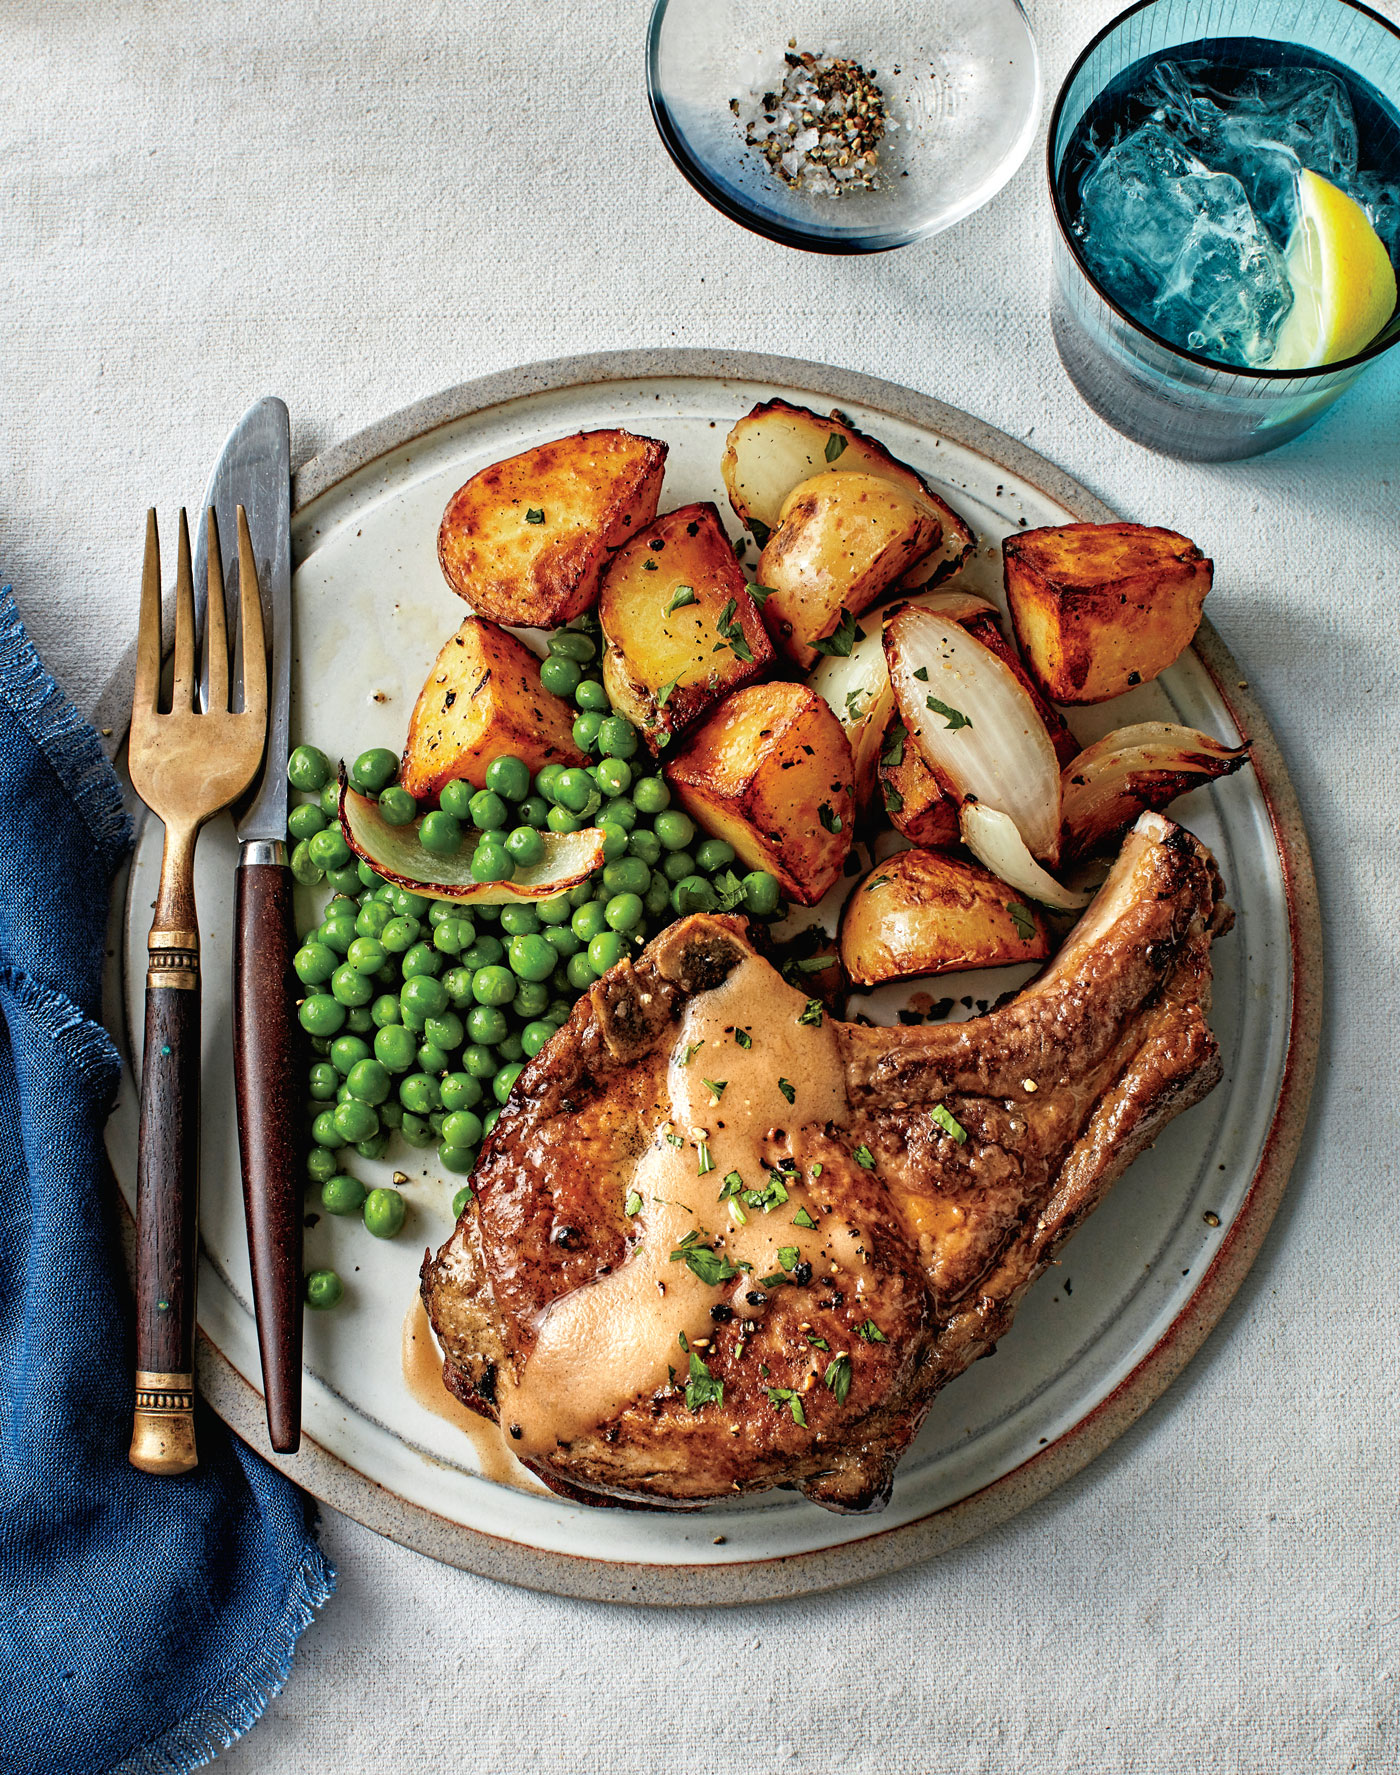 Fried Pork Chops with Peas and Potatoes image